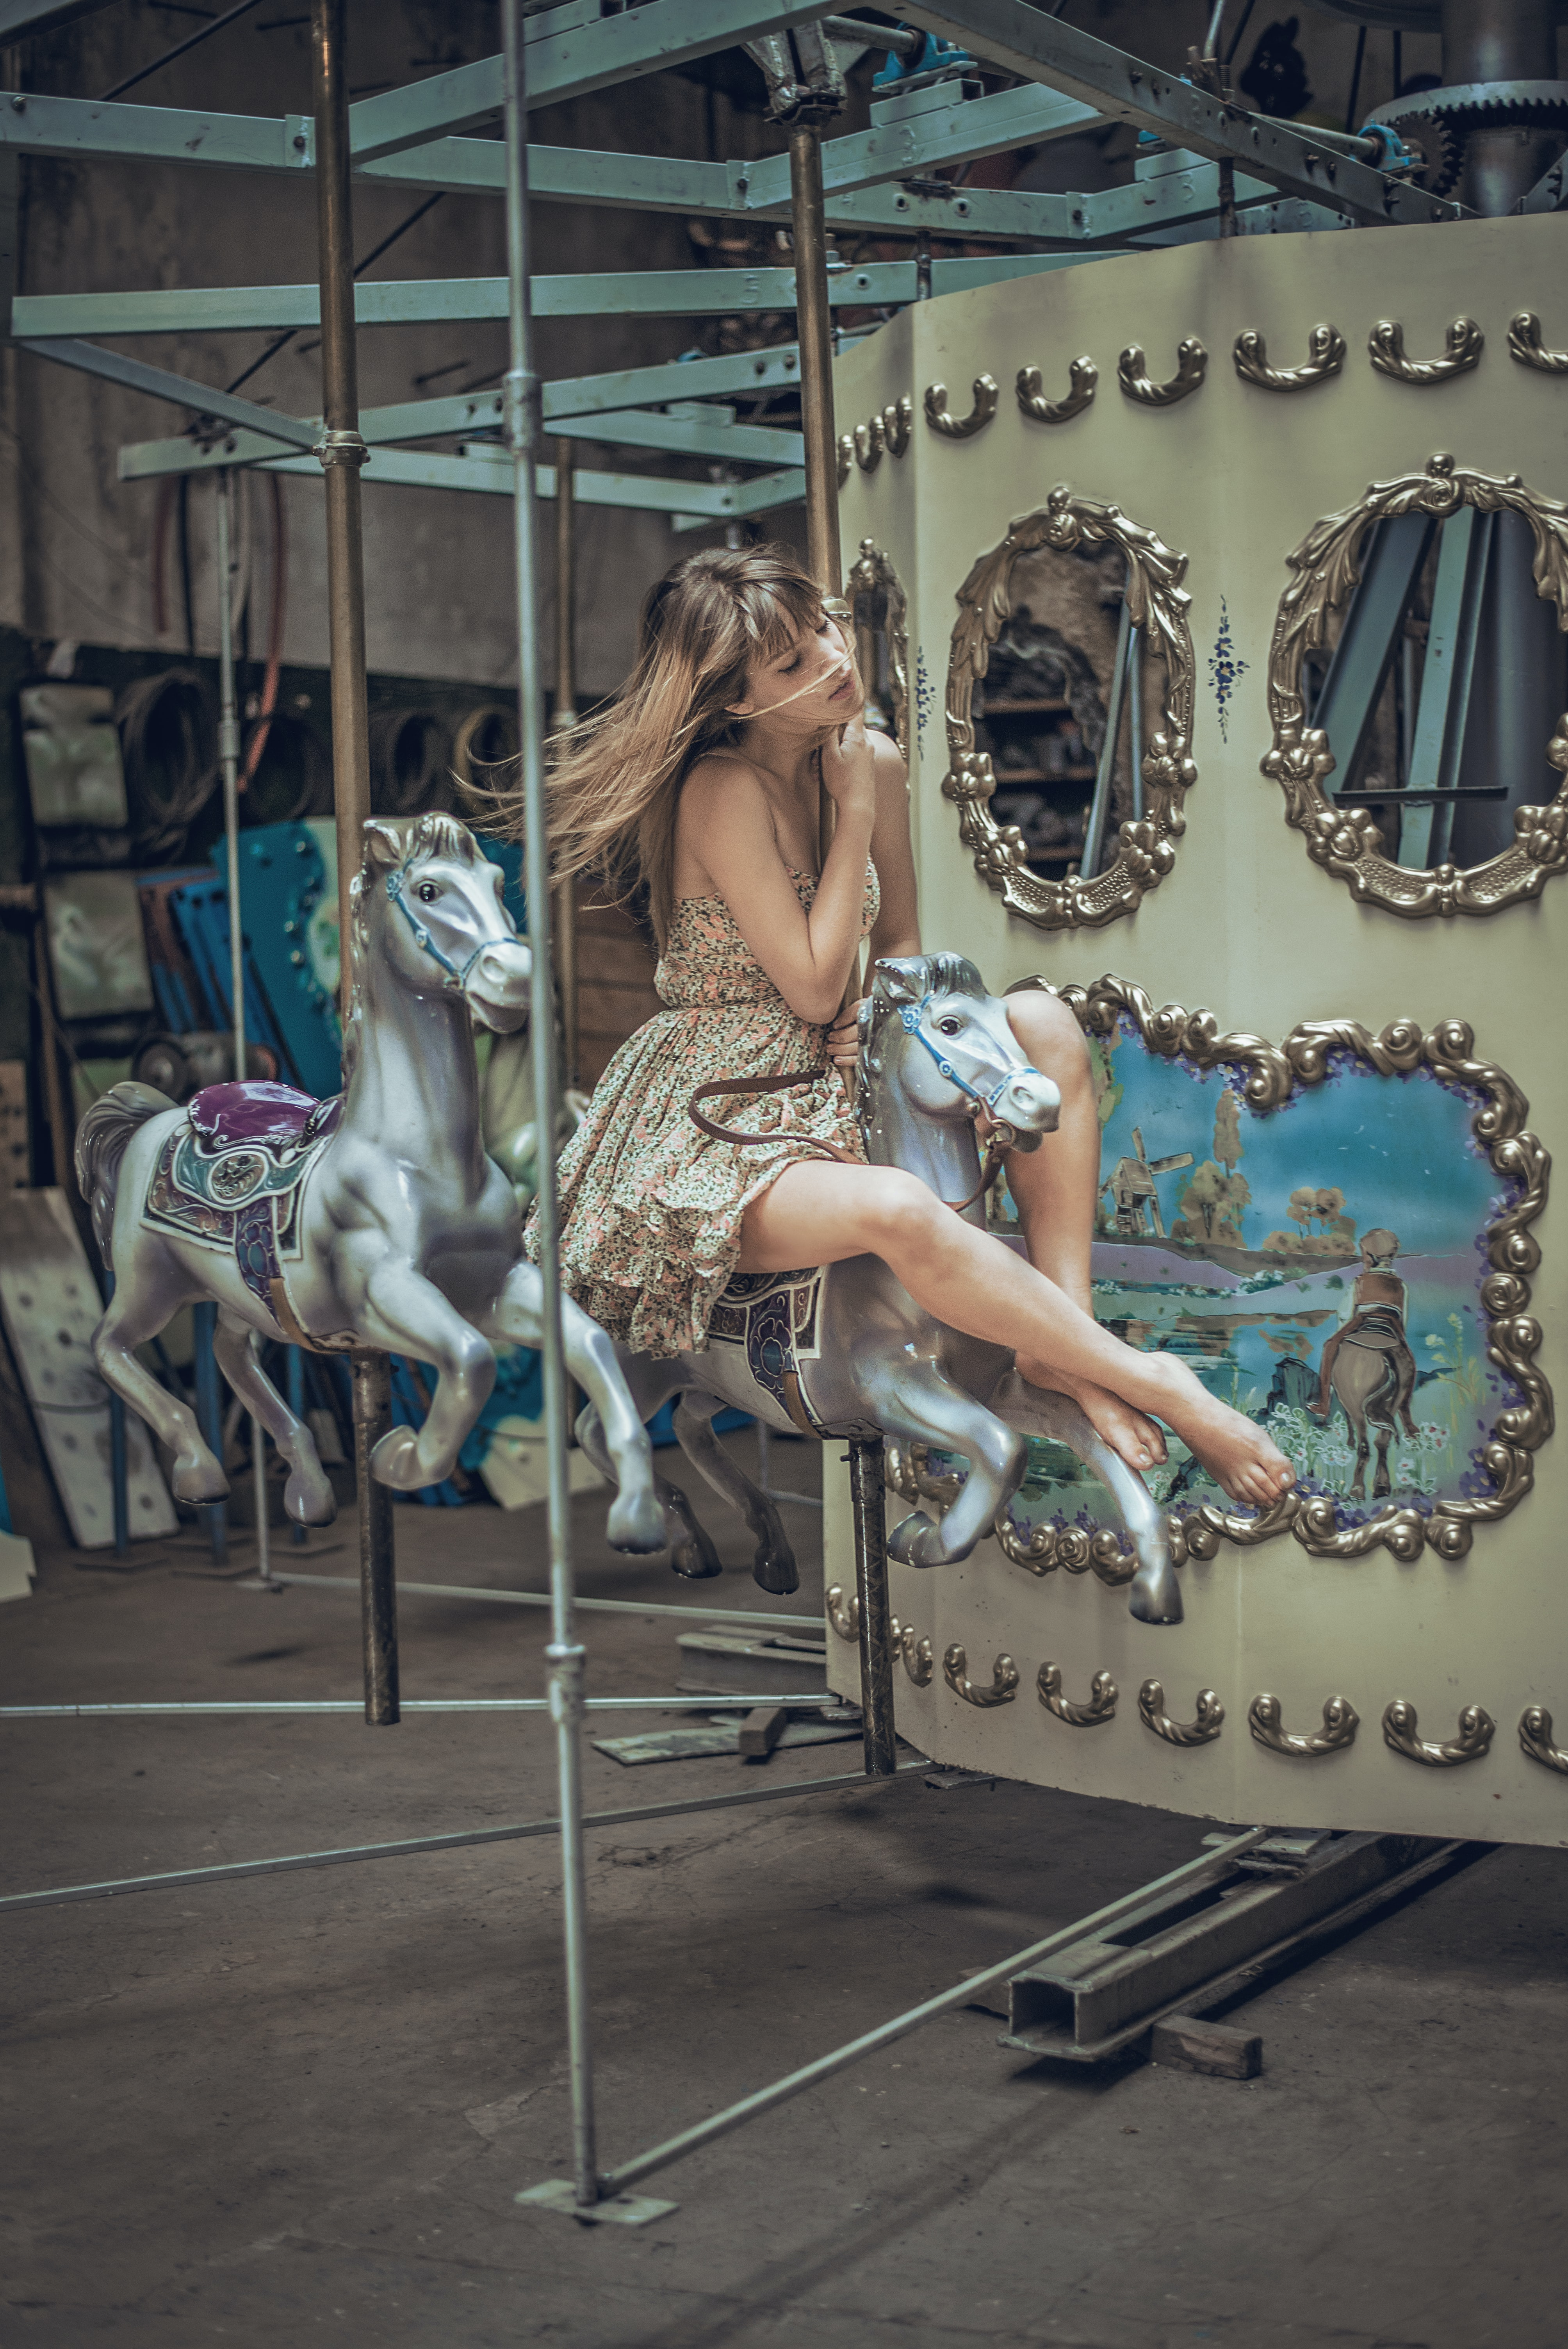 woman riding carousel